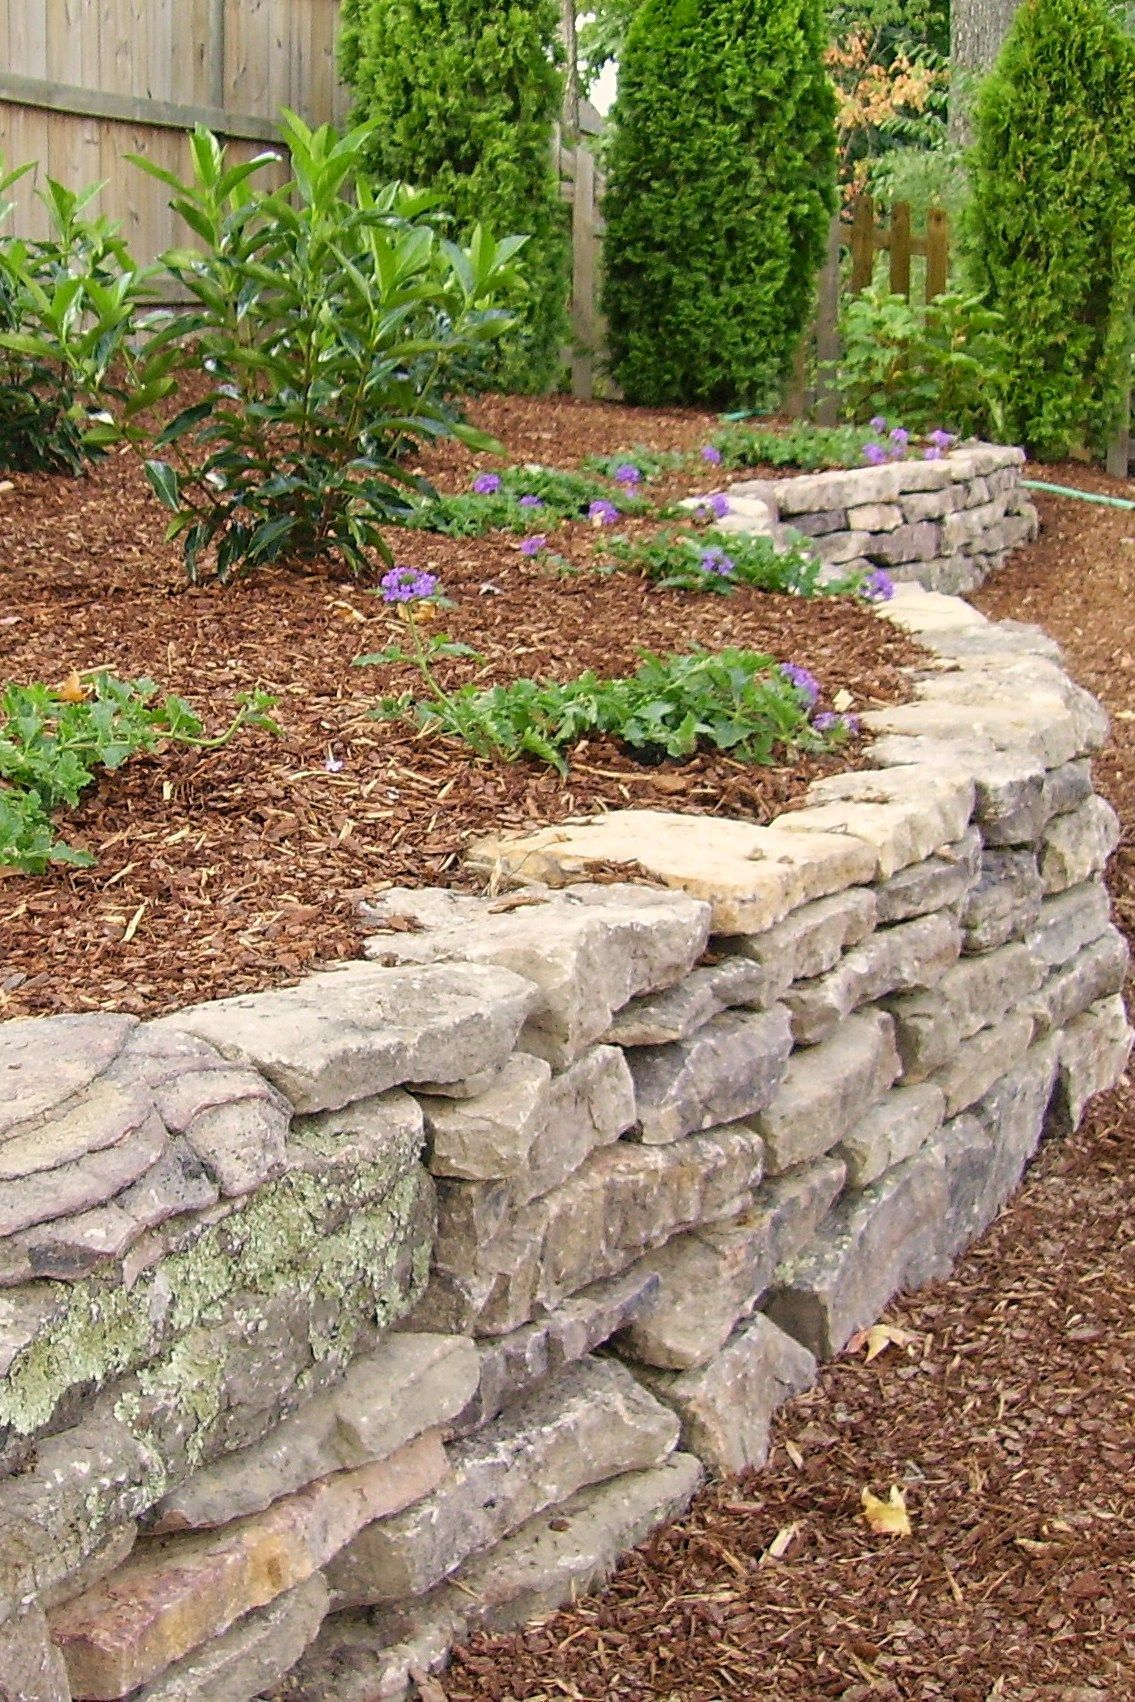 Dry Stacked Stone Another Great Way To Create Levels And Control Slope Issues Like Outdoor Dreams On Facebook For Garten Hochbeet Steinmauer Garten Garten